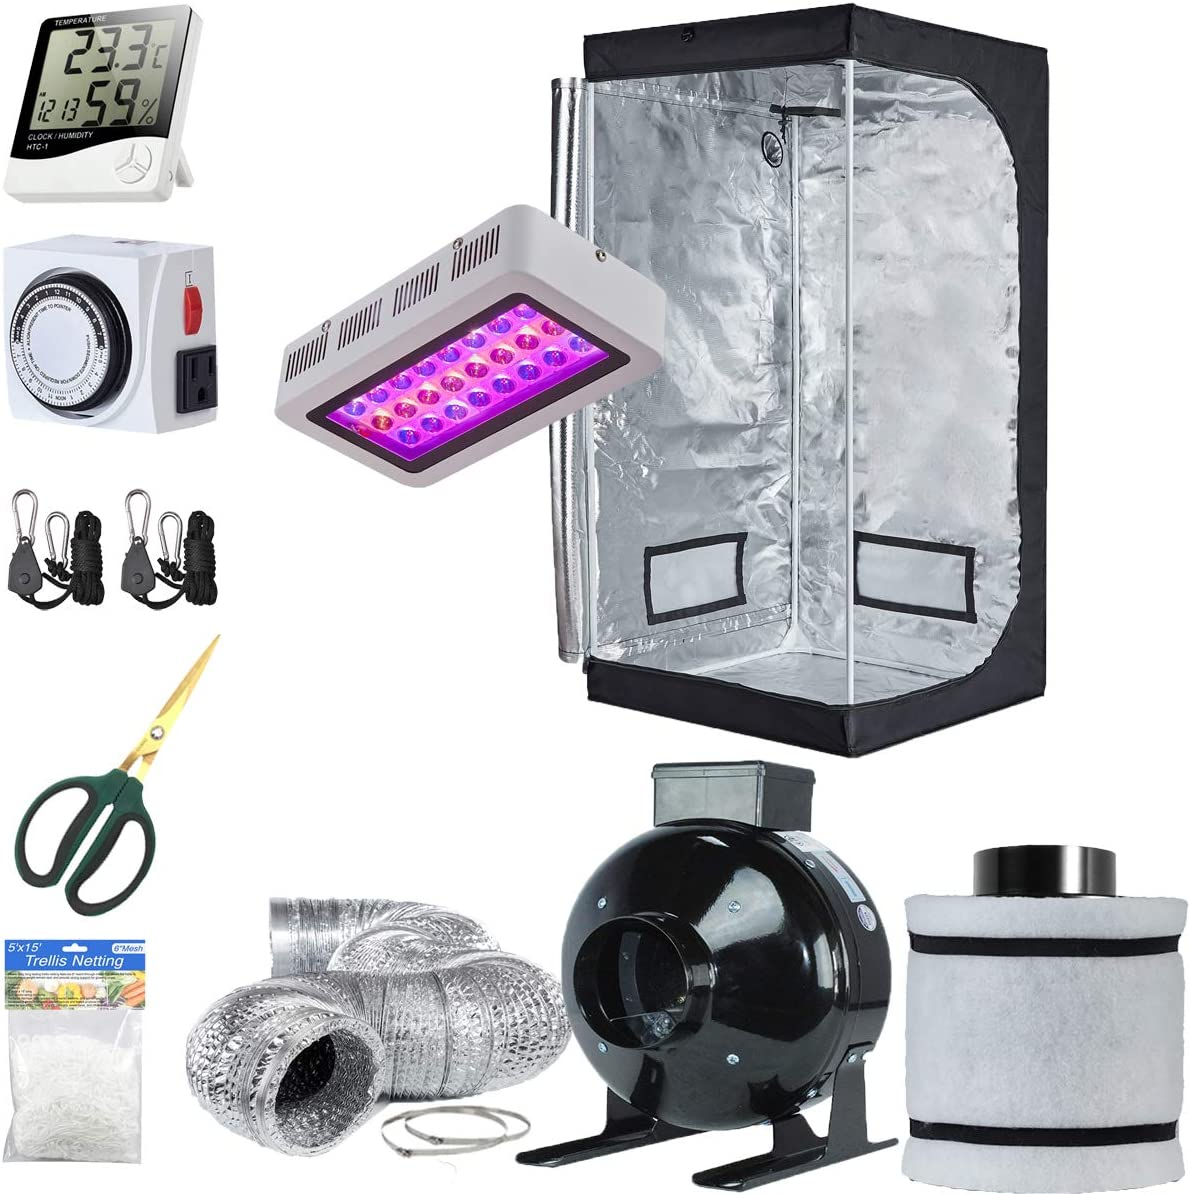 TopoLite Grow Tent Setup Complete Kit LED 300W Grow Light 32 x32 x63 Dark Room 4 Filter Exhaust Kit Hydroponics Indoor Plants Growing System Accessories 32 x32 x63 Kit